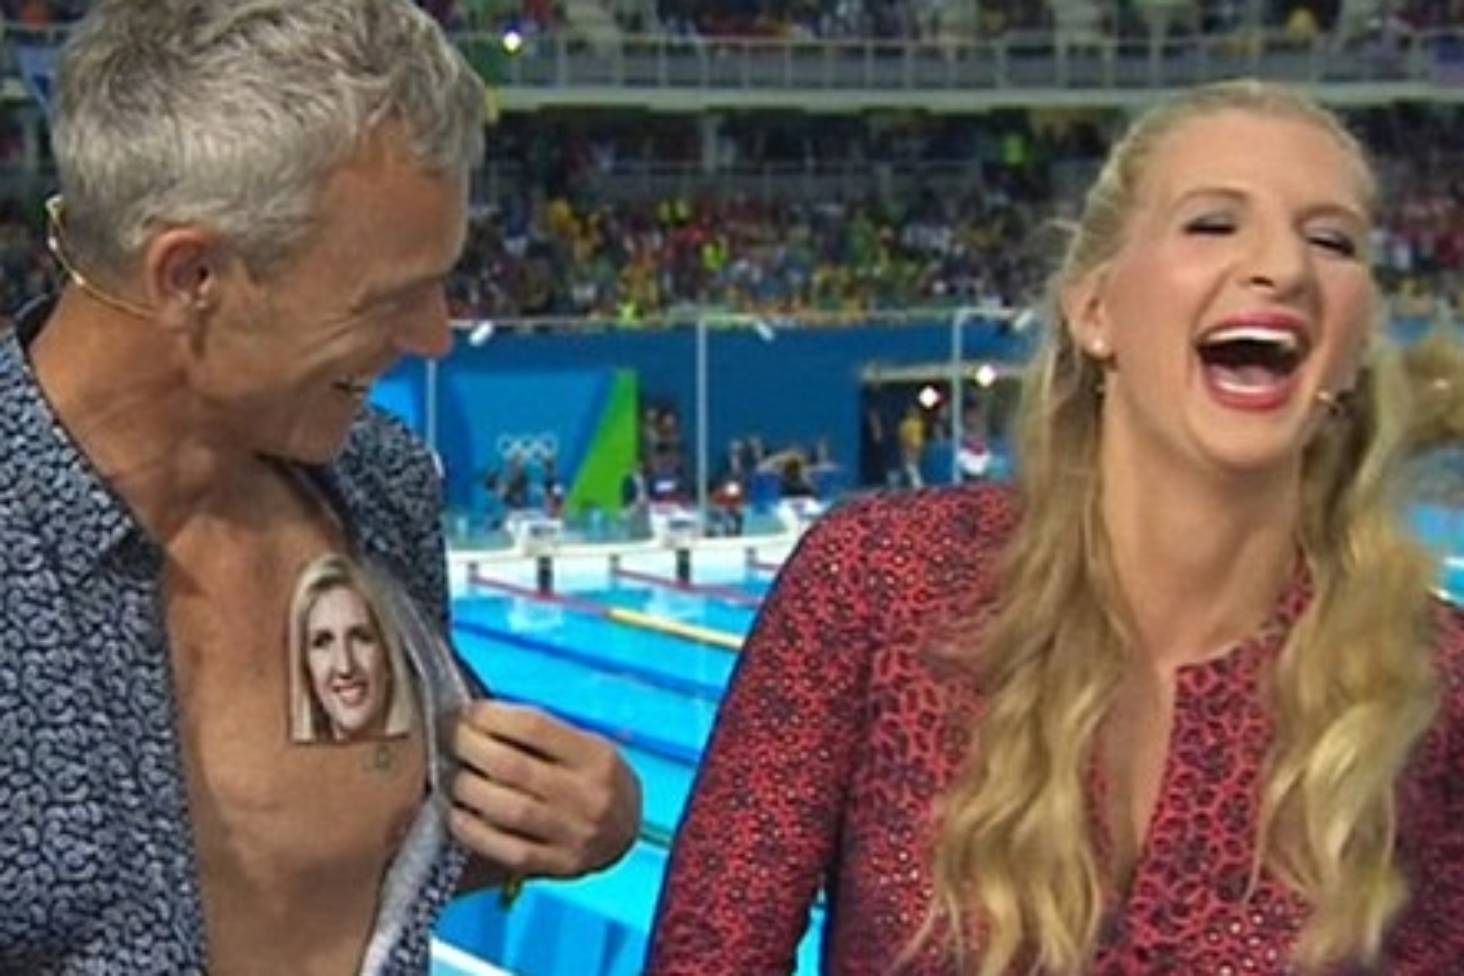 BBC swimming presenters back at it again with more